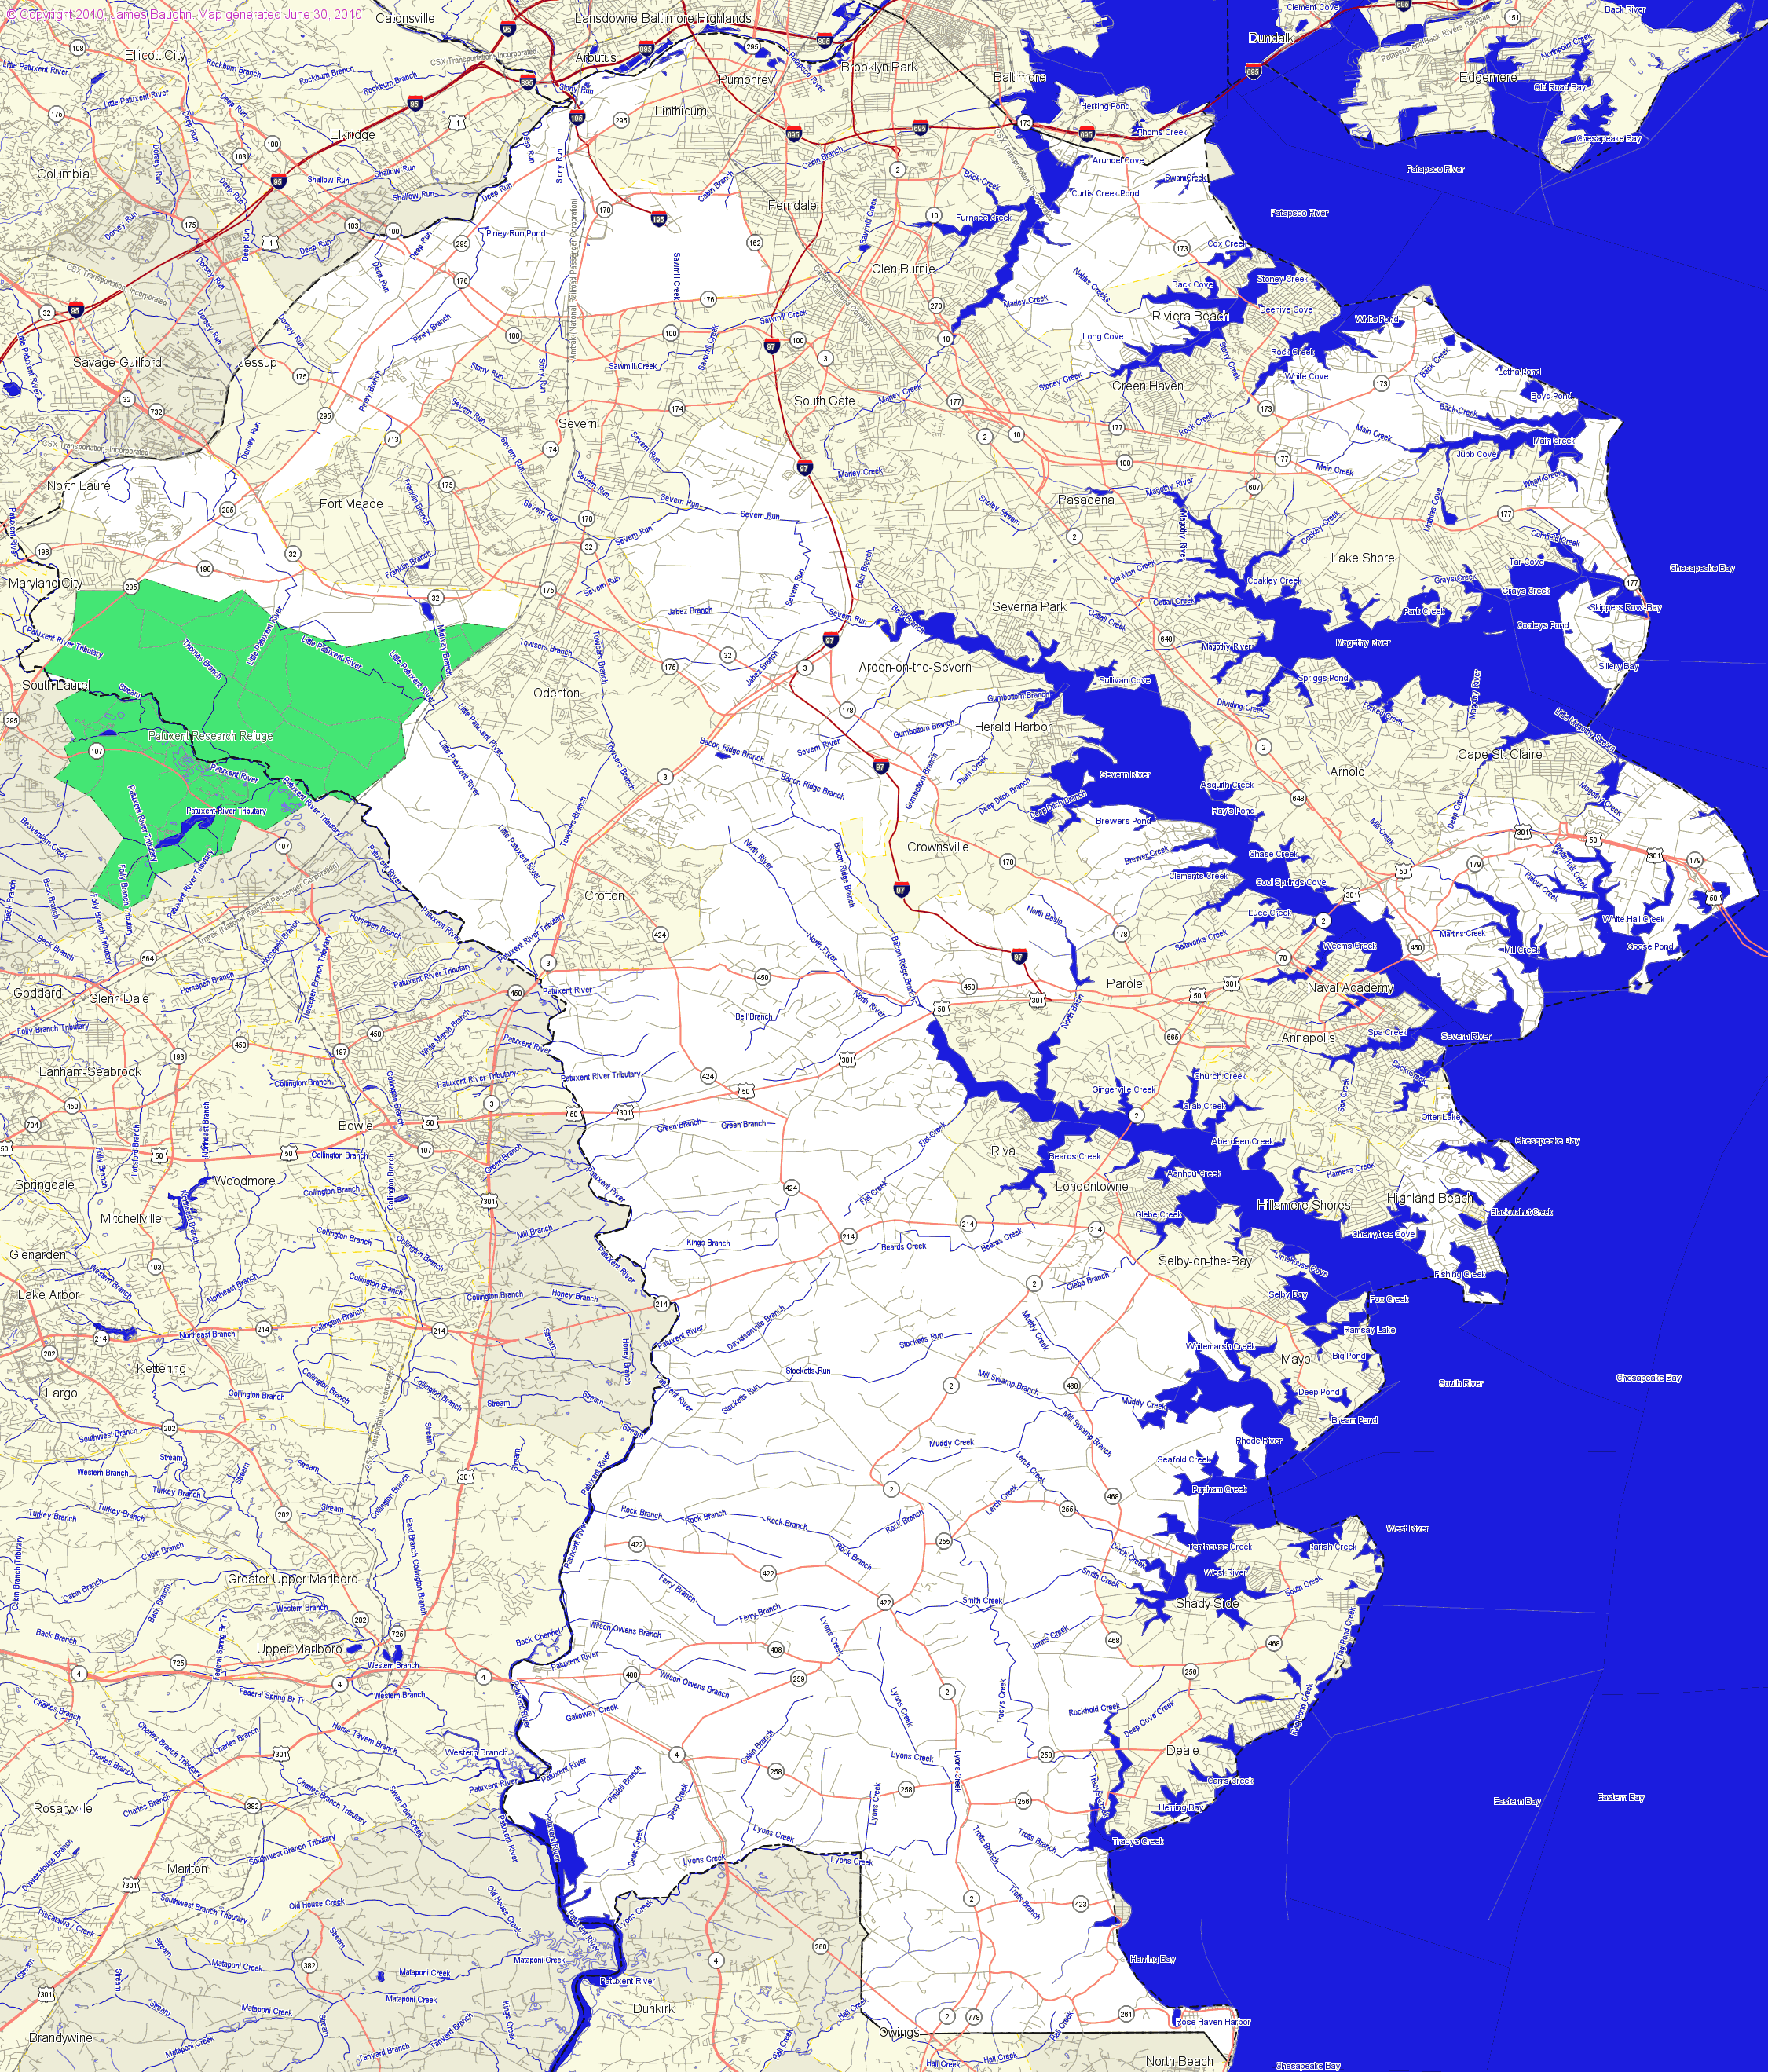 LandmarkHunter.com | Anne Arundel County, Maryland on annapolis map, prince william county map, prince george's county map, frederick county map, howard county md map, arundel mills map, cass county map, harford county map, baltimore map, maryland county map, prince george co. md map, burke county map, calvert county map, glen burnie map, queen anne map, montgomery county map, carroll county map, arundel md map, ellicott city map, johnson county map,